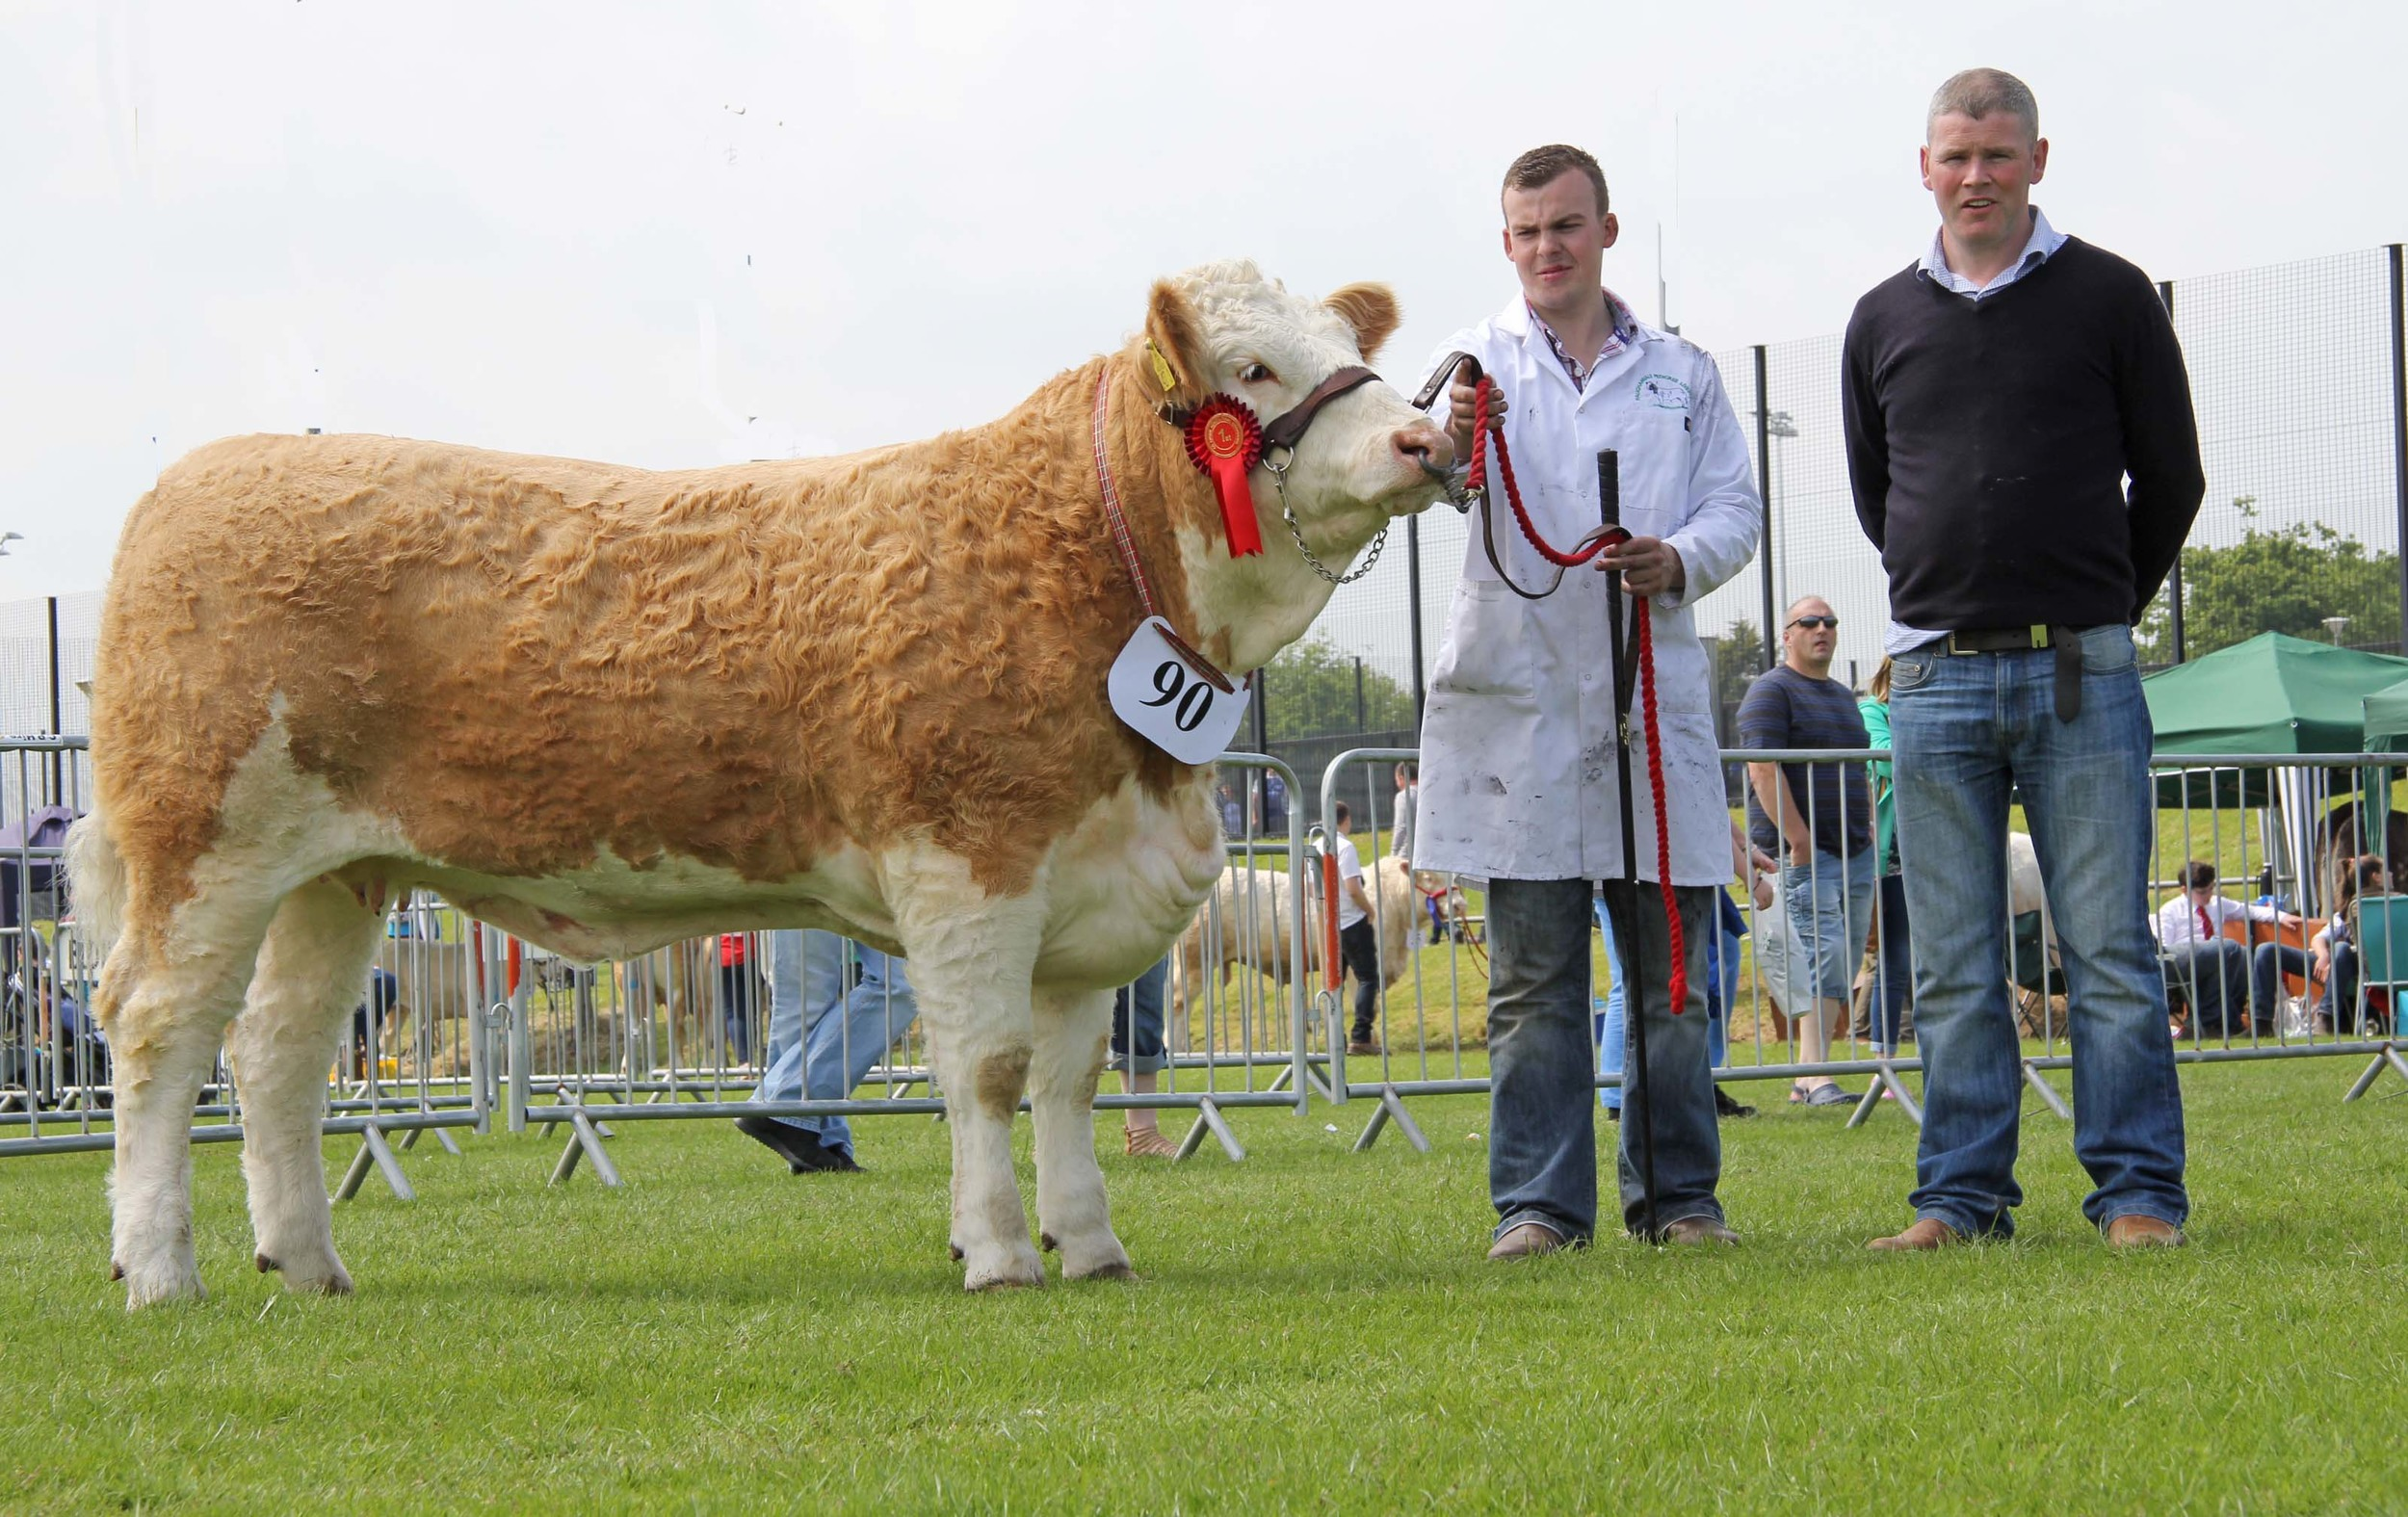 Anthony McGuinness exhibited Cleenagh Good Girl, winner of the Woodcraft Kitchens (Kiilrea) junior heifer derby at Ballymena Show. He was congratulated by sponsor Eamon McCloskey.